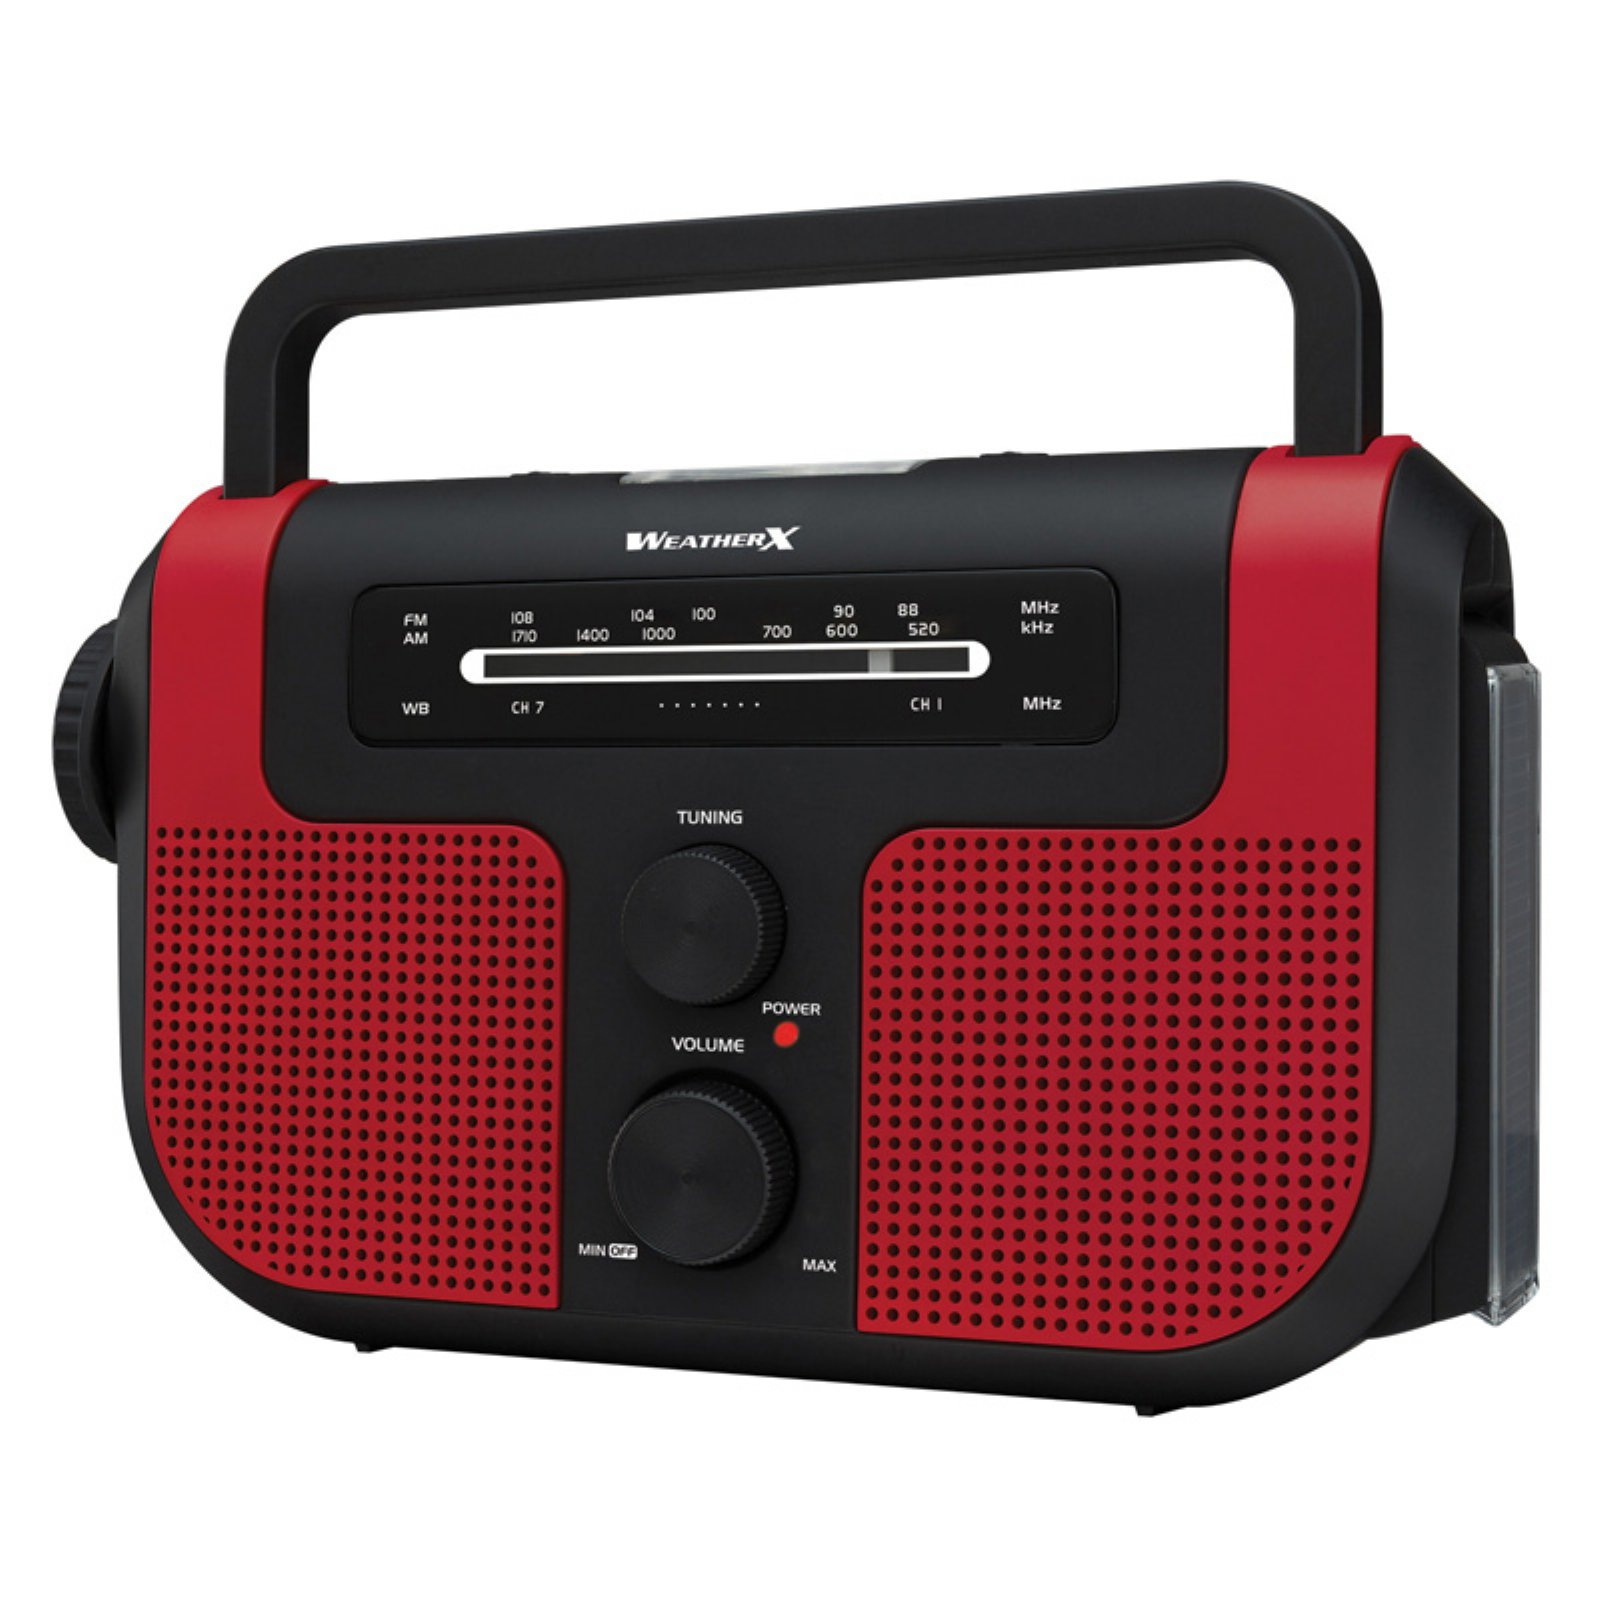 Weather-X Wr383r Weatherband AM/FM Radio with Flashlight